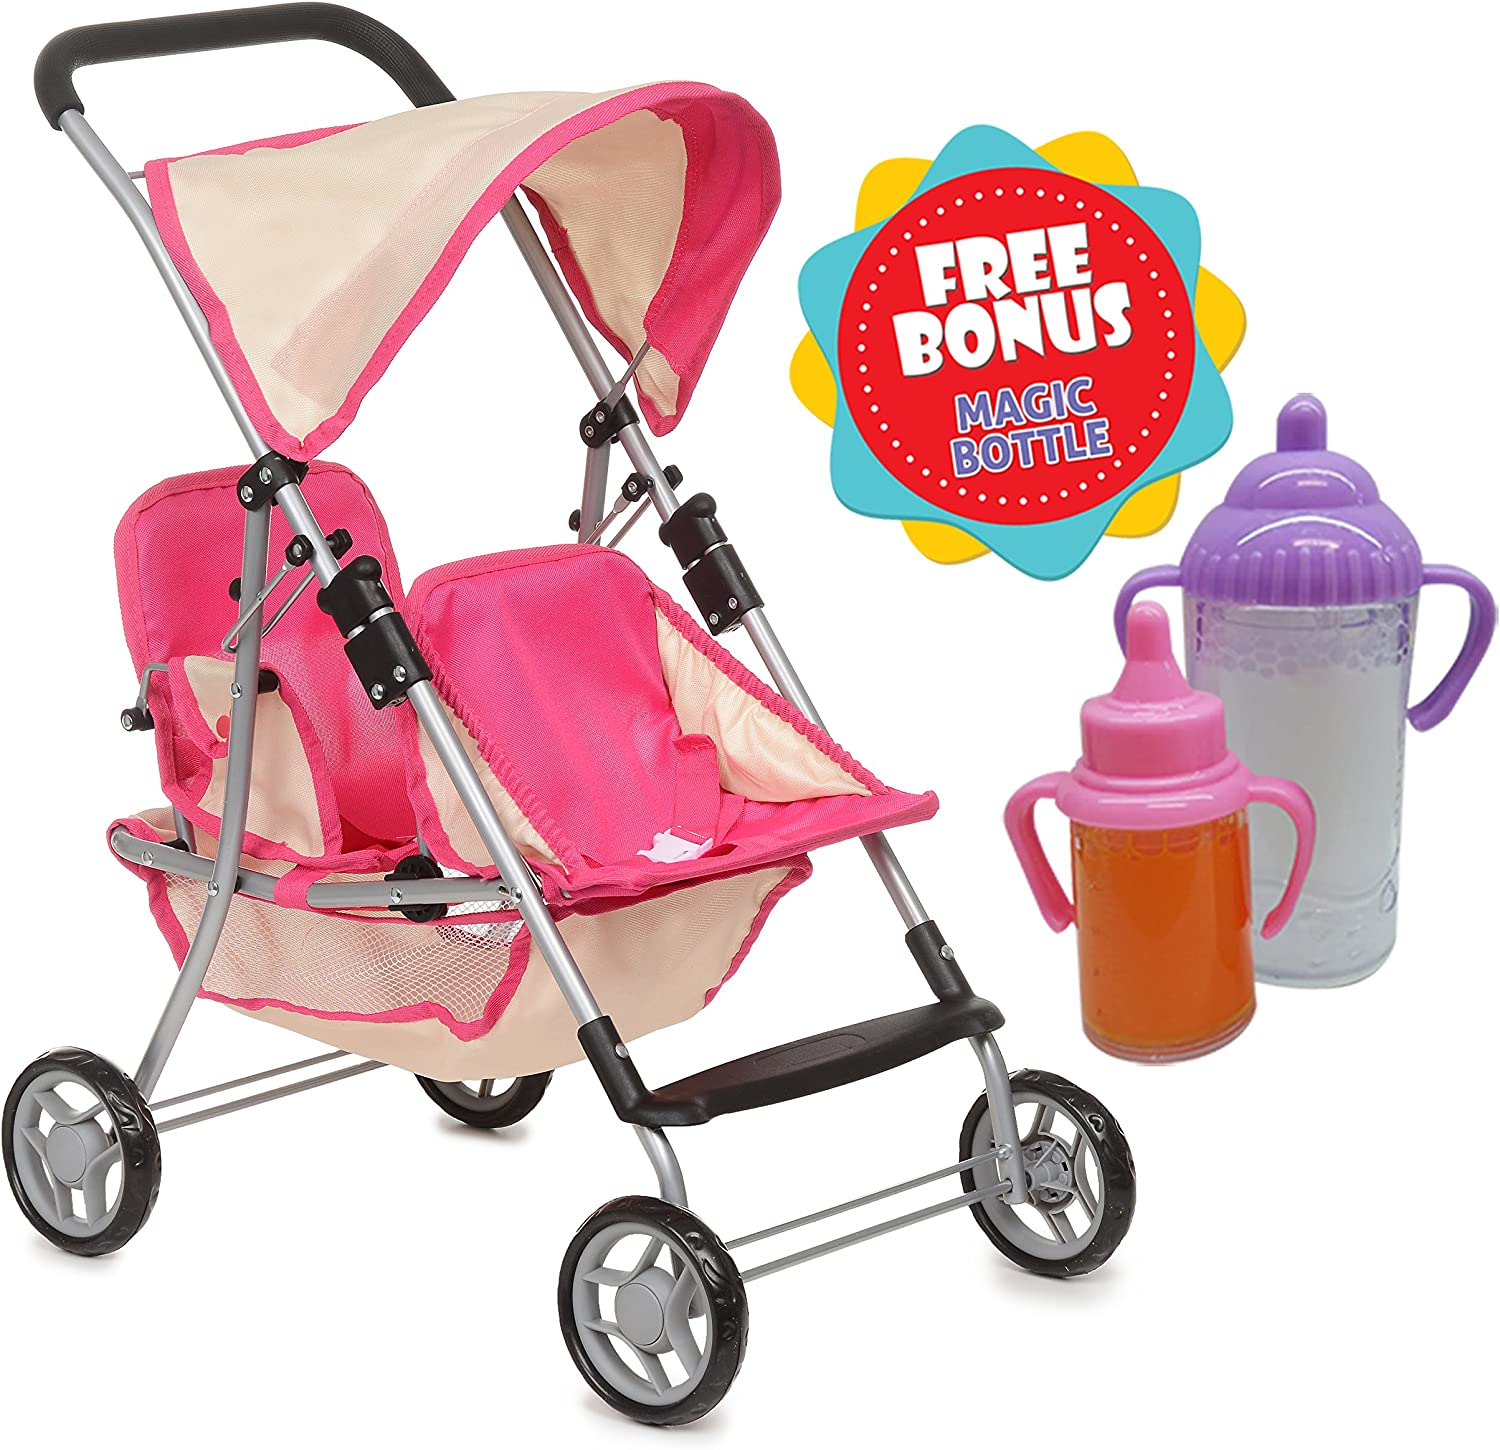 Exquisite Buggy, Twin Doll Stroller with 2 Free Magic Bottles (Pink)